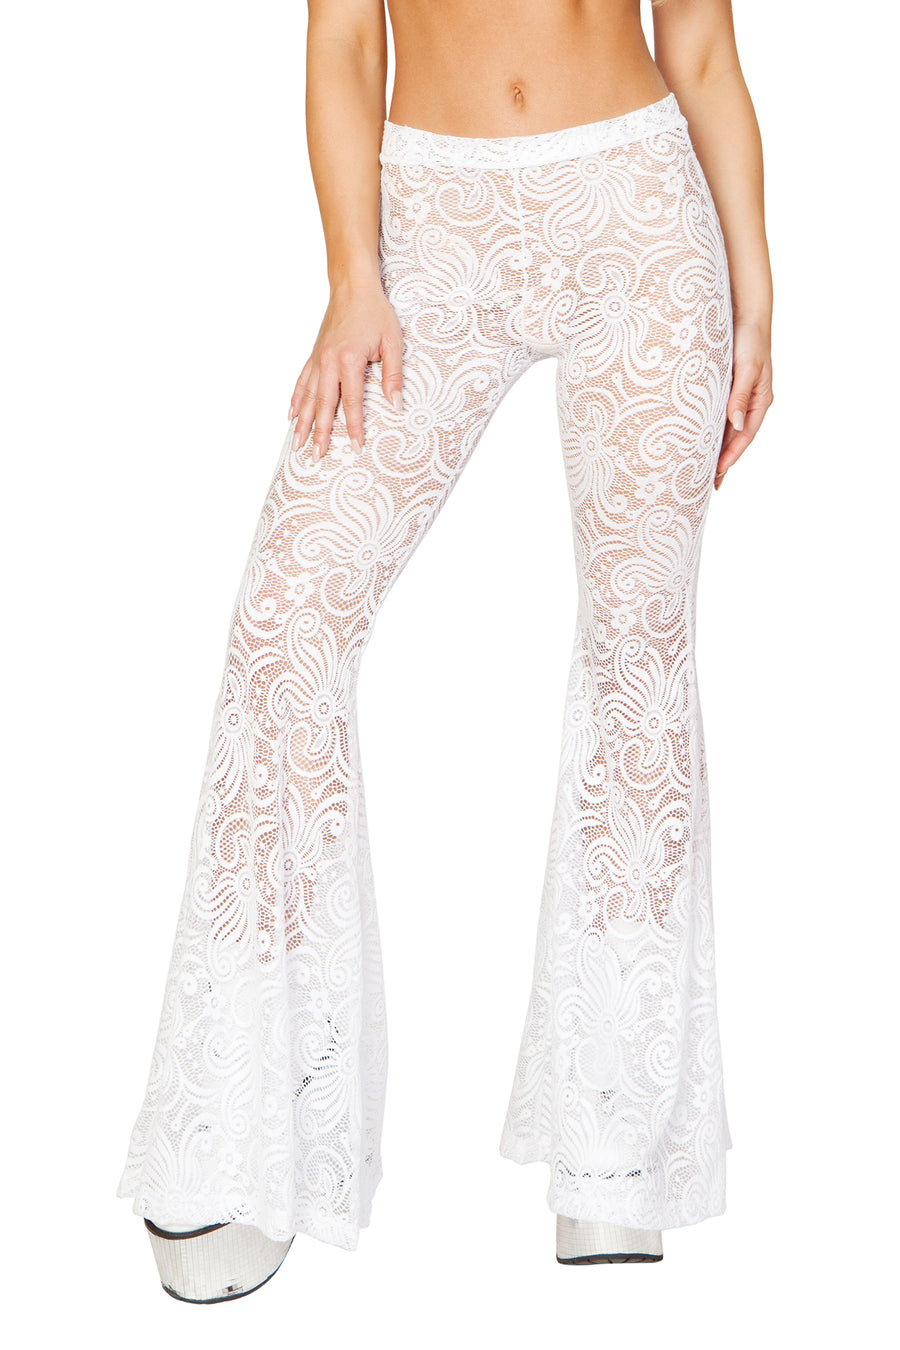 White Cyclone Lace Bell Bottom Pant - FireFly Volume 3, J Valentine - YourLamode